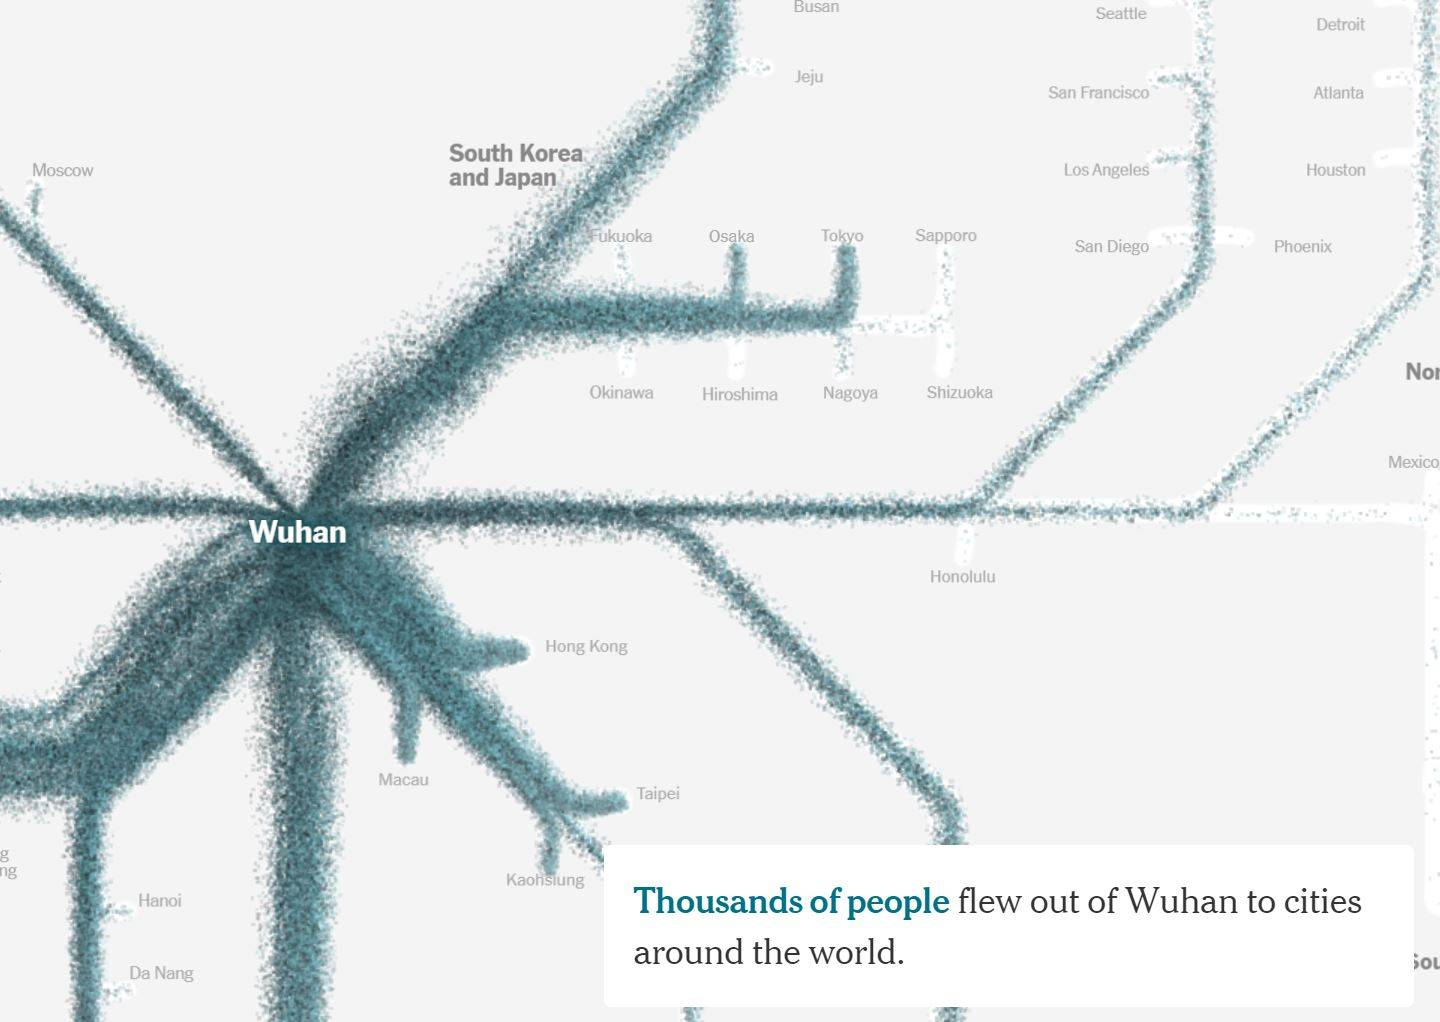 Screenshot from NY Times article showing flow of virus out of Wuhan to the rest of the world